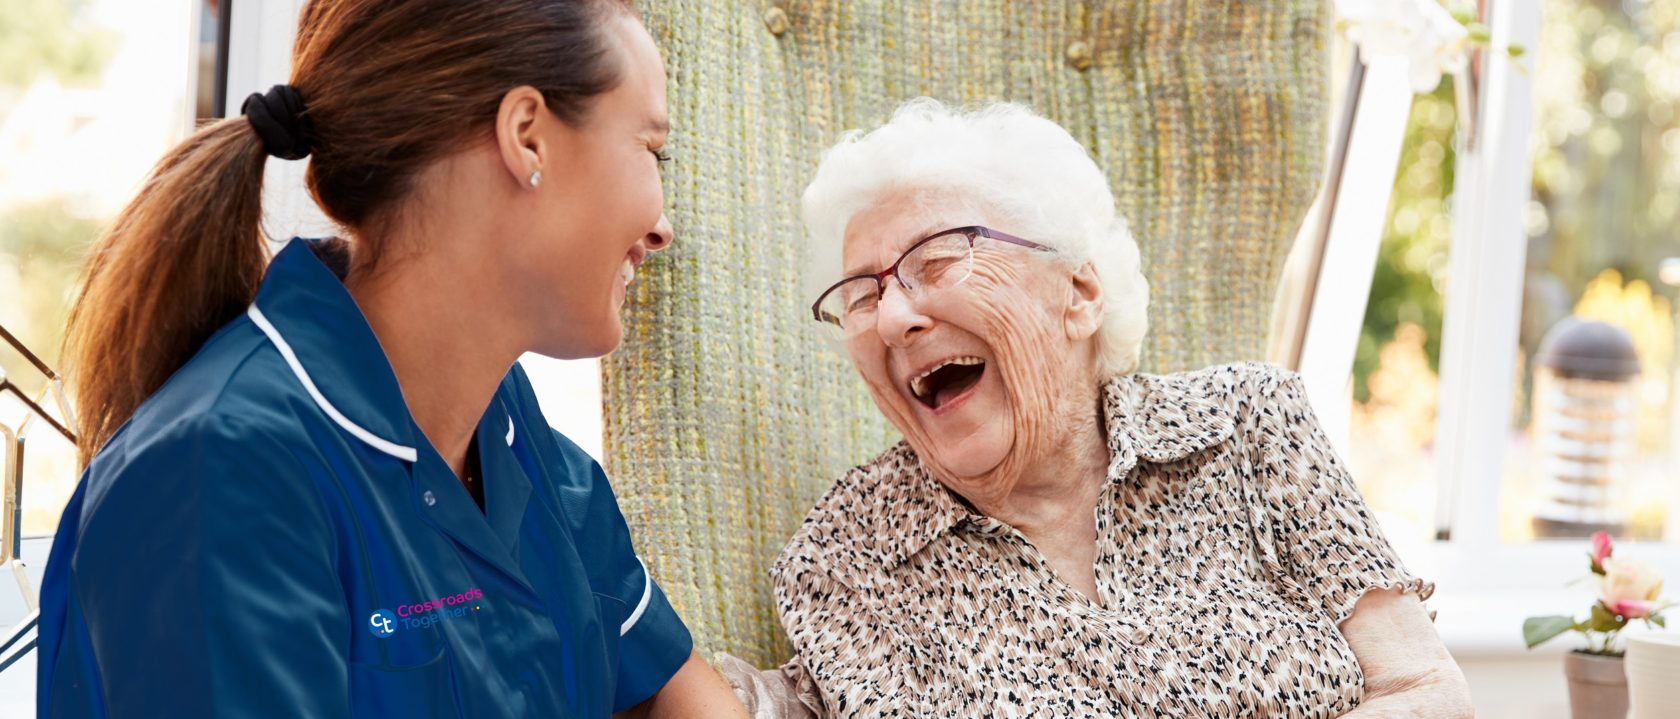 Support worker caring for elderly woman